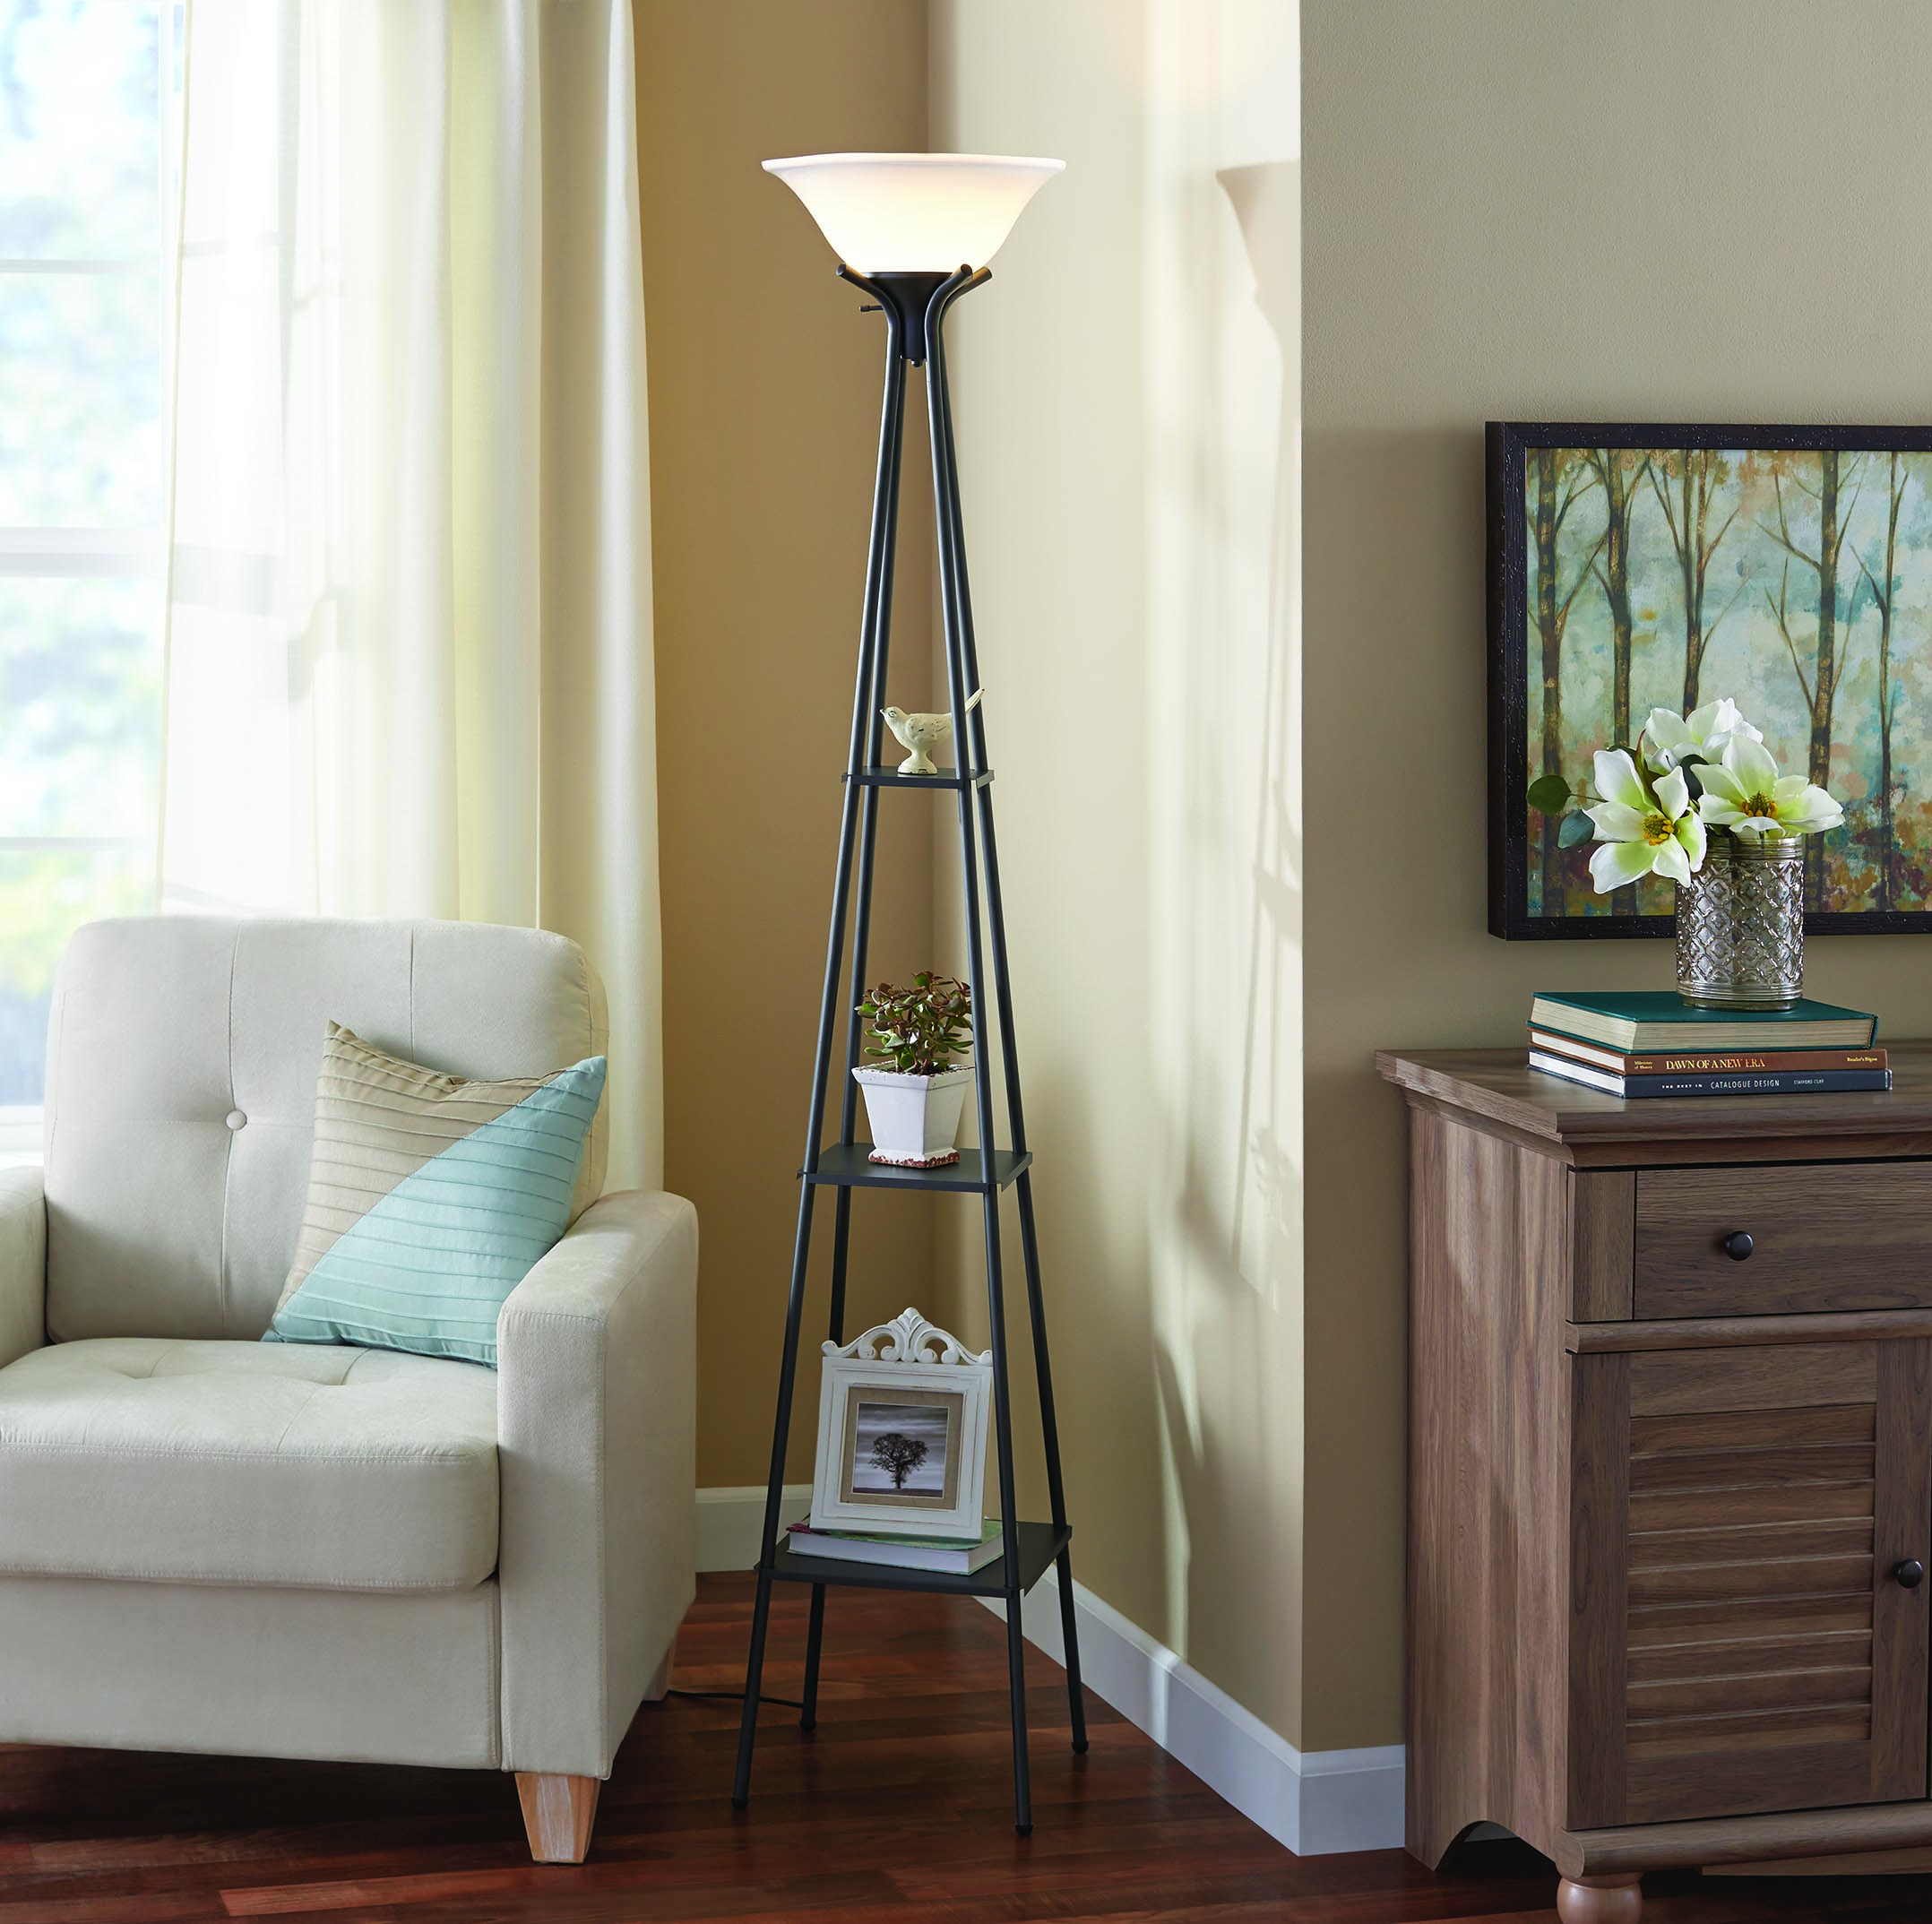 Mainstays 69 Etagere Floor Lamp Charcoal Finish CFL Bulb Included